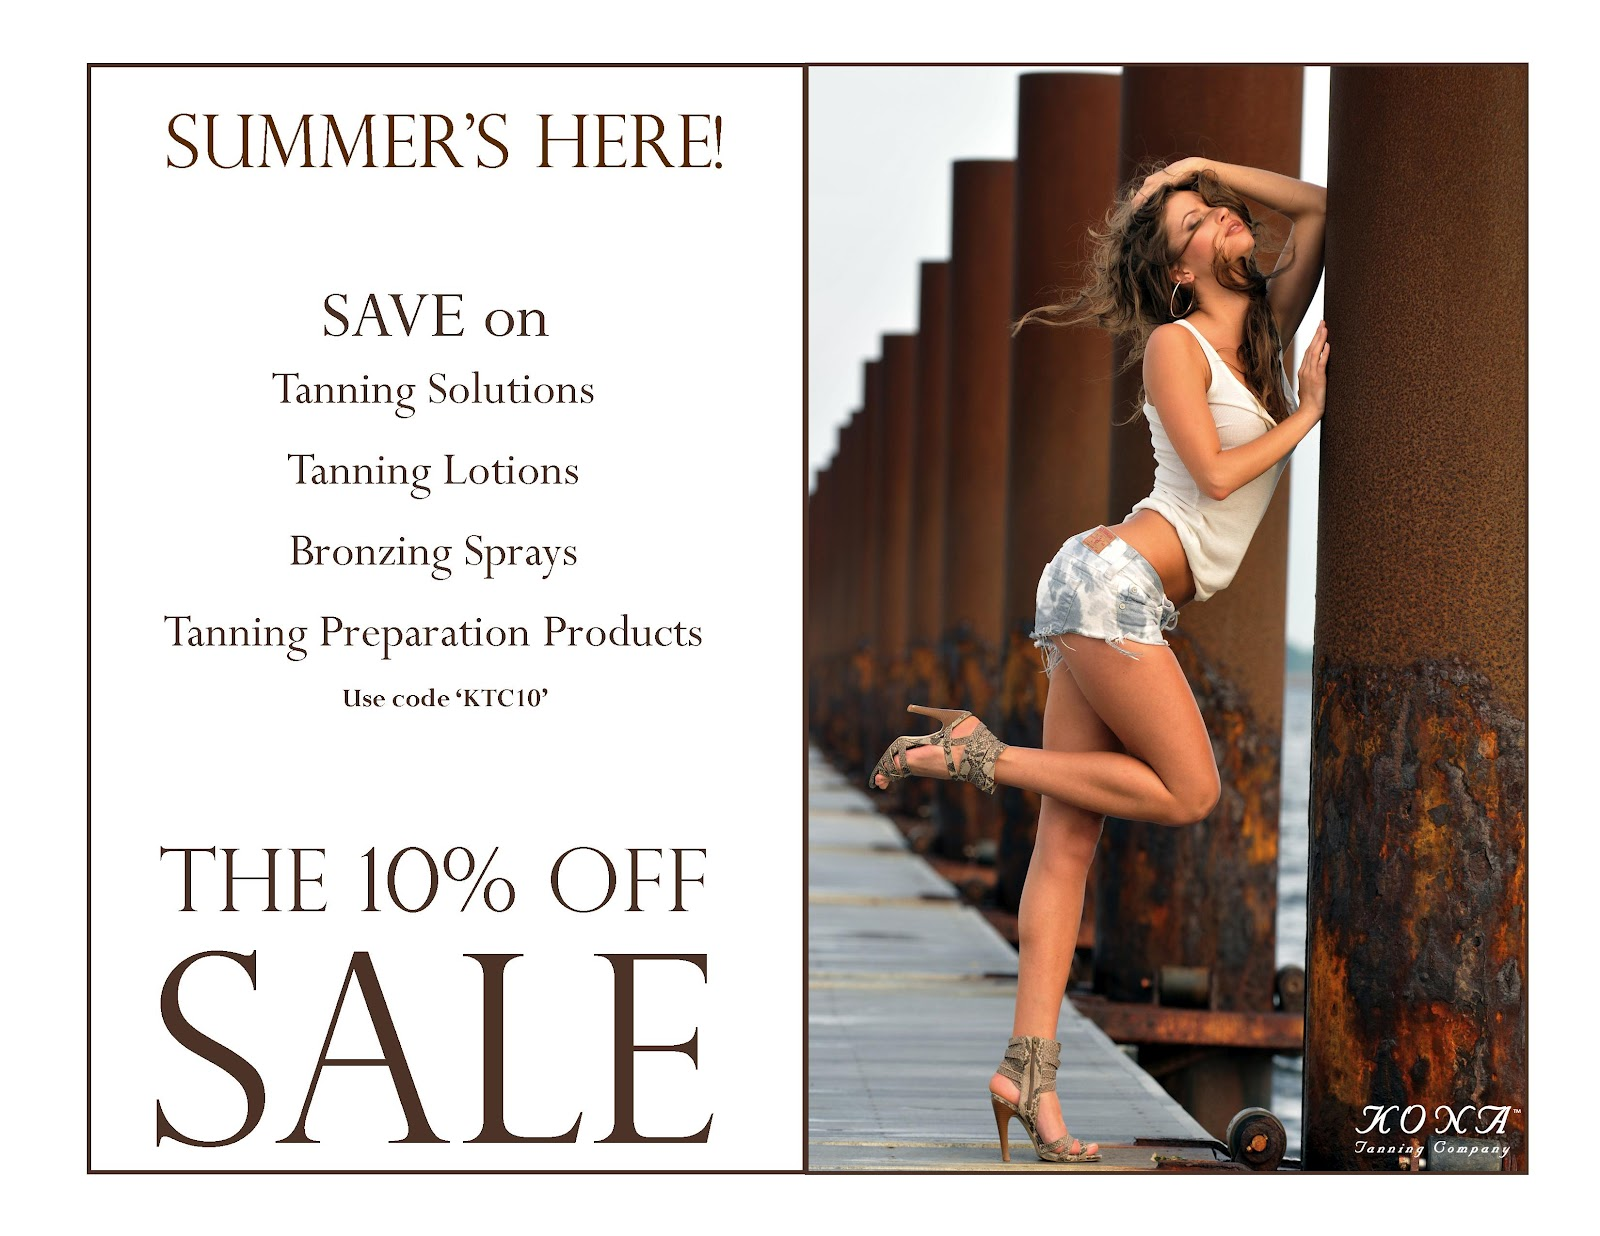 When you are searching for Summer Solutions best promo codes, you are guaranteed to receive the most current and useful promotion deals and discounts. We provide 3 coupon codes, 1 promotion sales and also numerous in-store deals and shopping tips for Summer Solutions best promo codes.